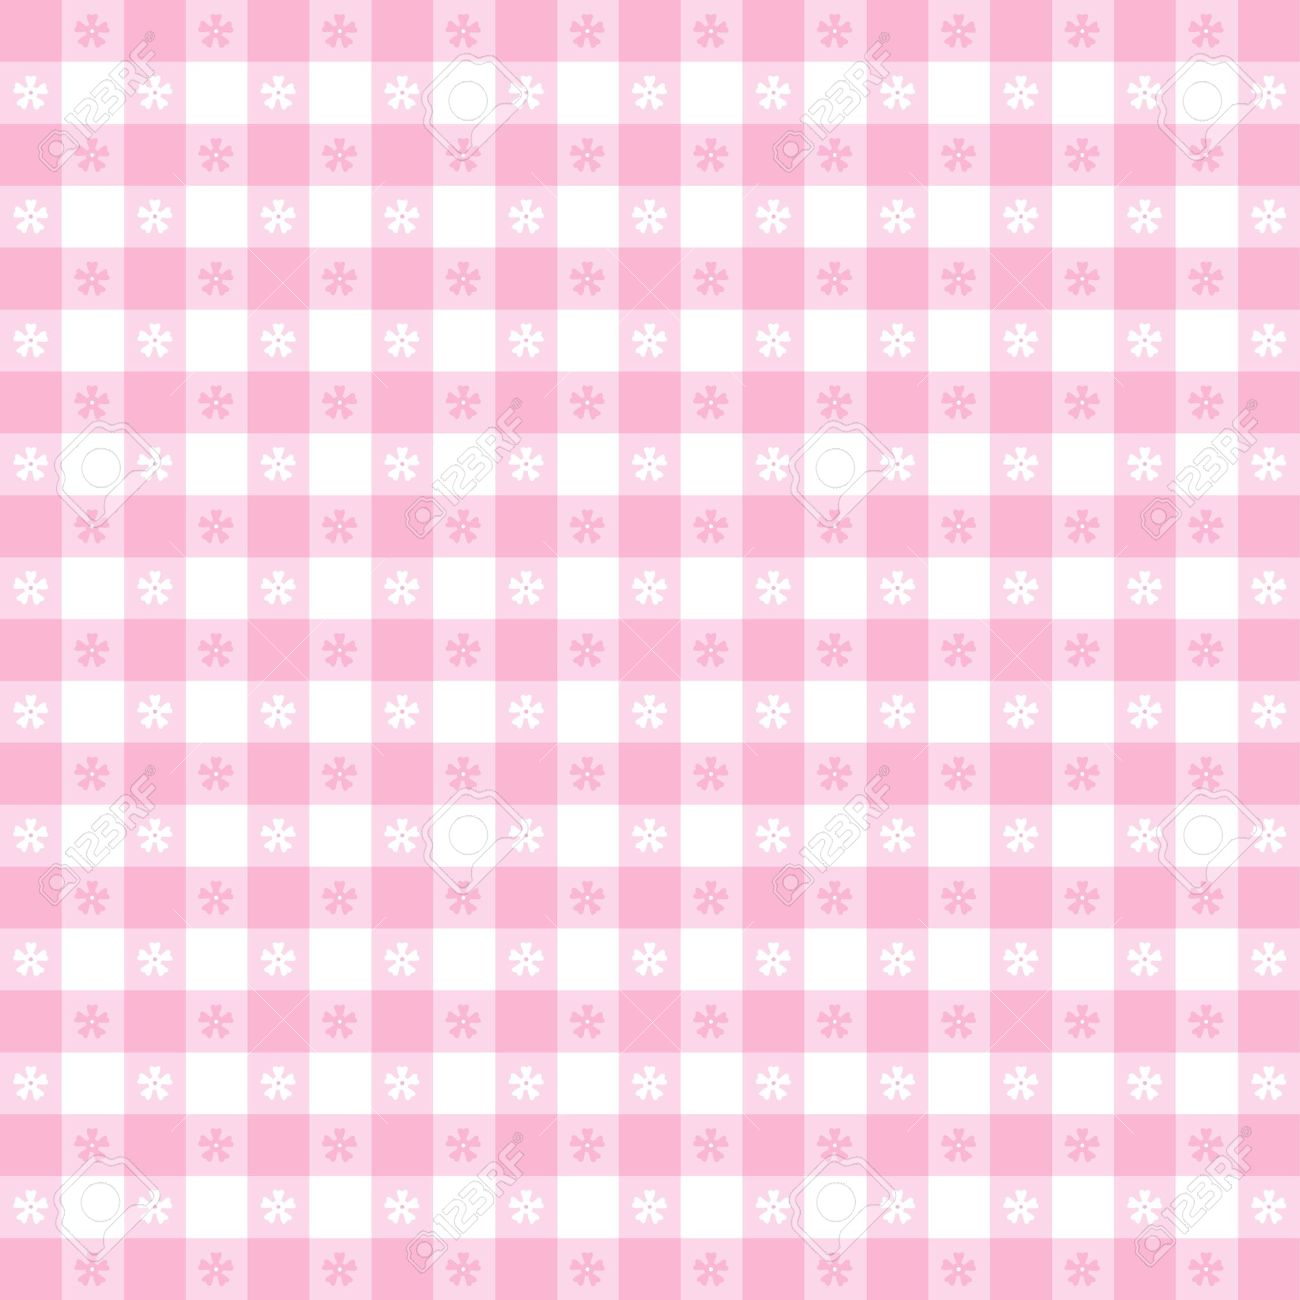 Seamless Tablecloth Pattern, Pastel Pink Gingham Check EPS8 File Includes  Pattern Swatch That Will Seamlessly